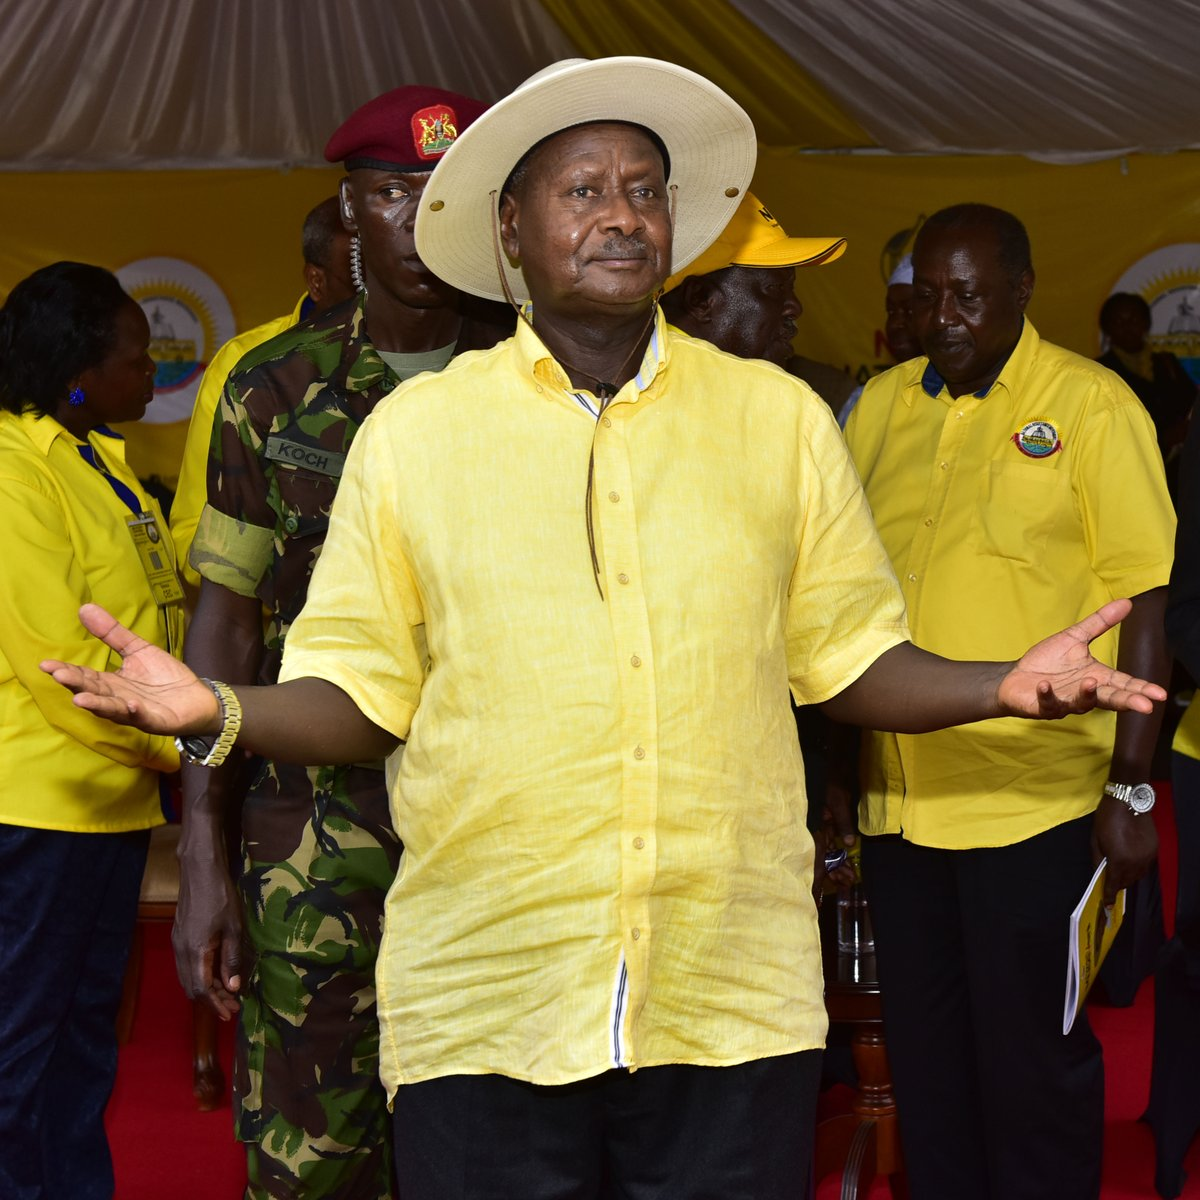 NRM came from the old political parties which were based on religion and tribe. We sensed a problem of that path and decided to form NRM that focused on people's needs. What does your religion or tribe have to do with roads or electricity?